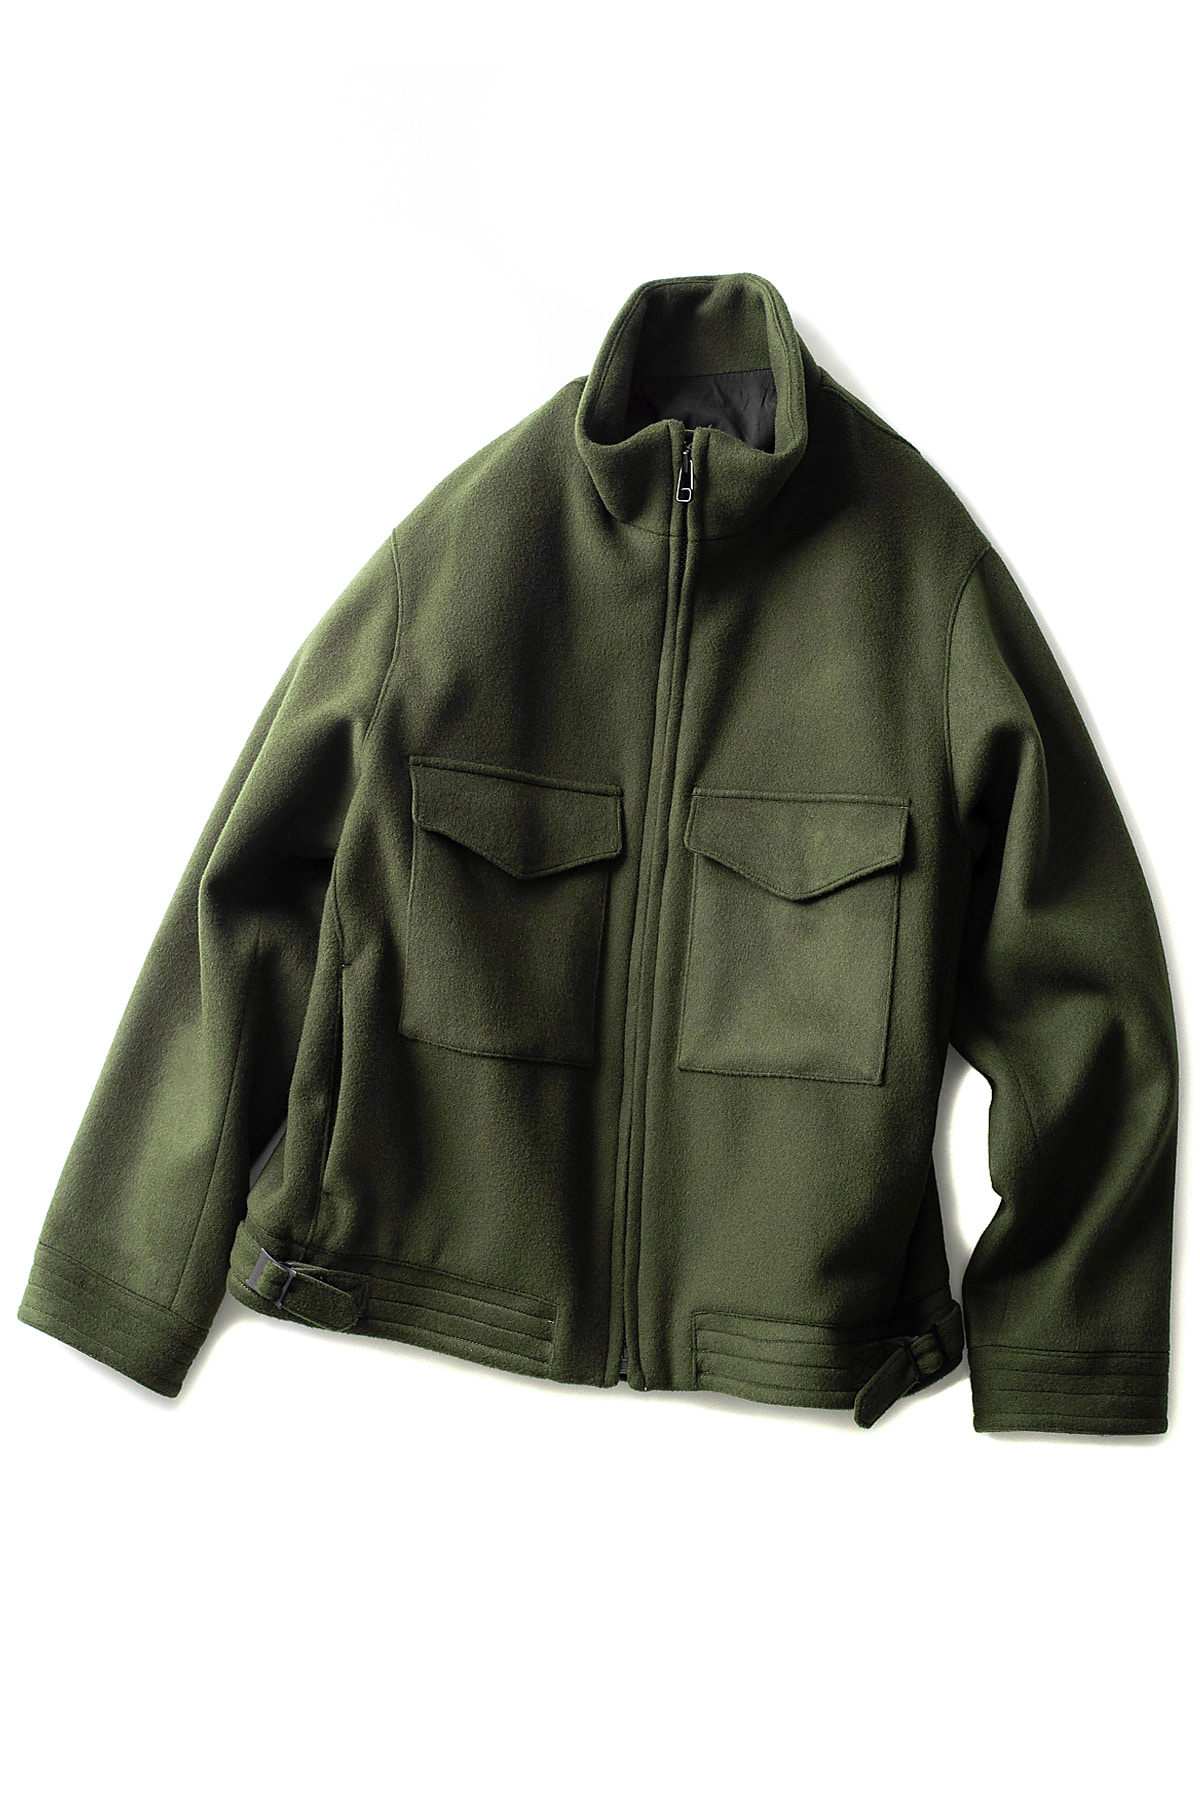 KURO : Super 100's Stand Collar Jacket (Khaki)